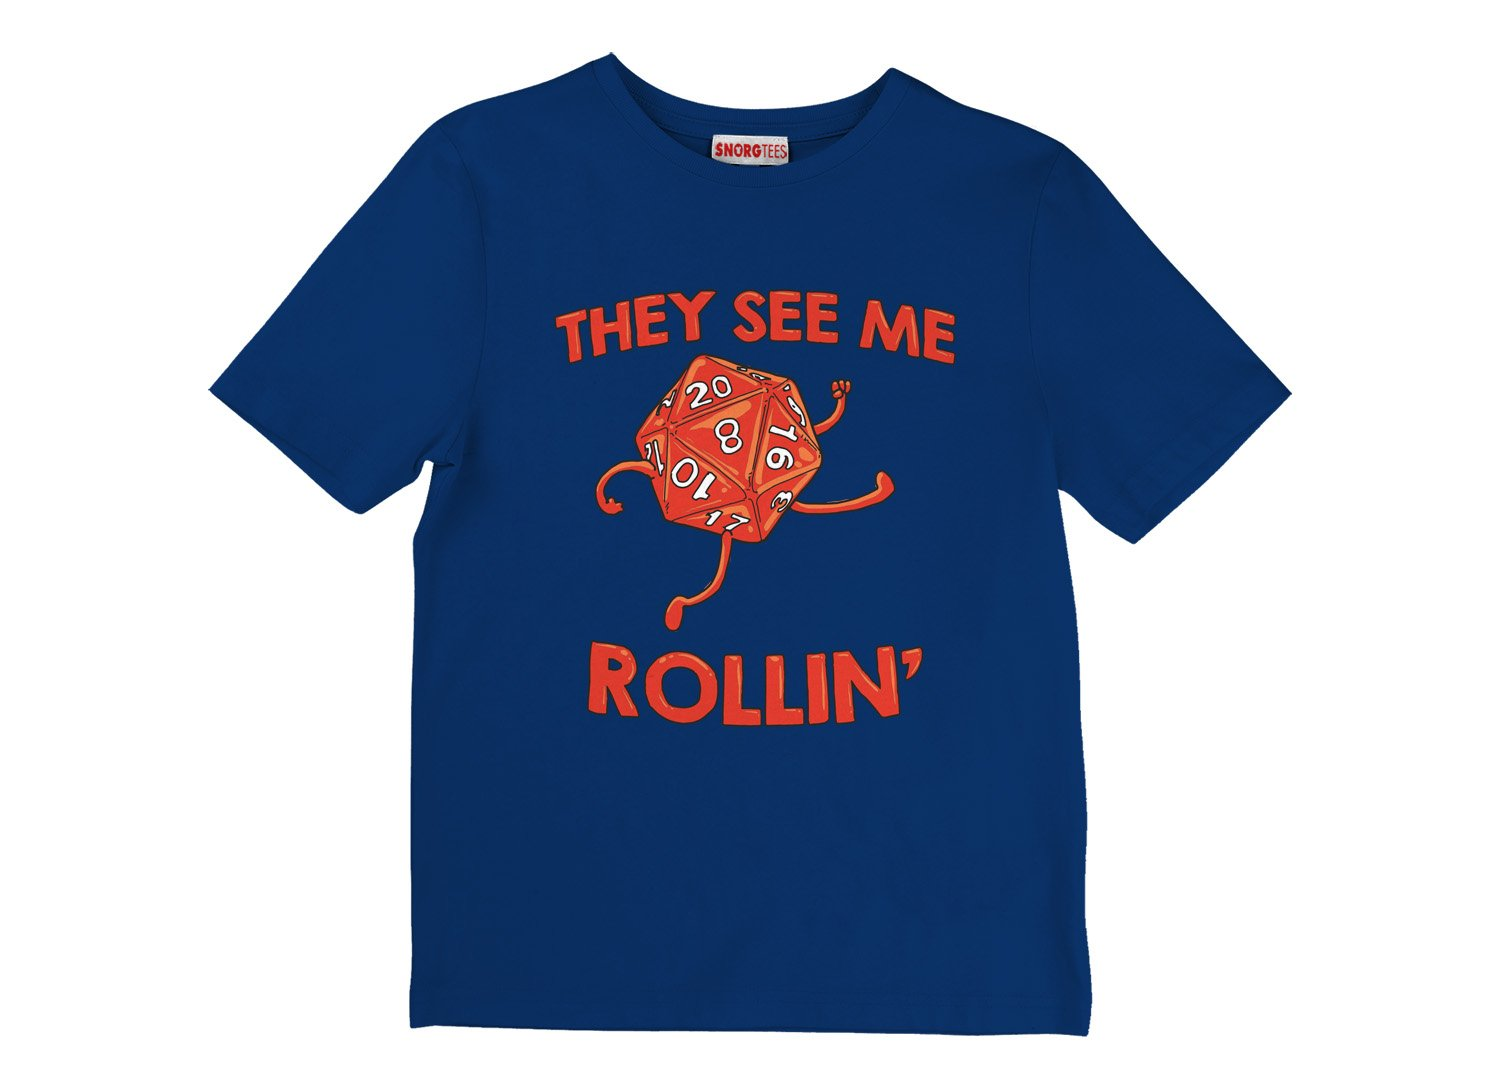 They See Me Rollin' on Kids T-Shirt